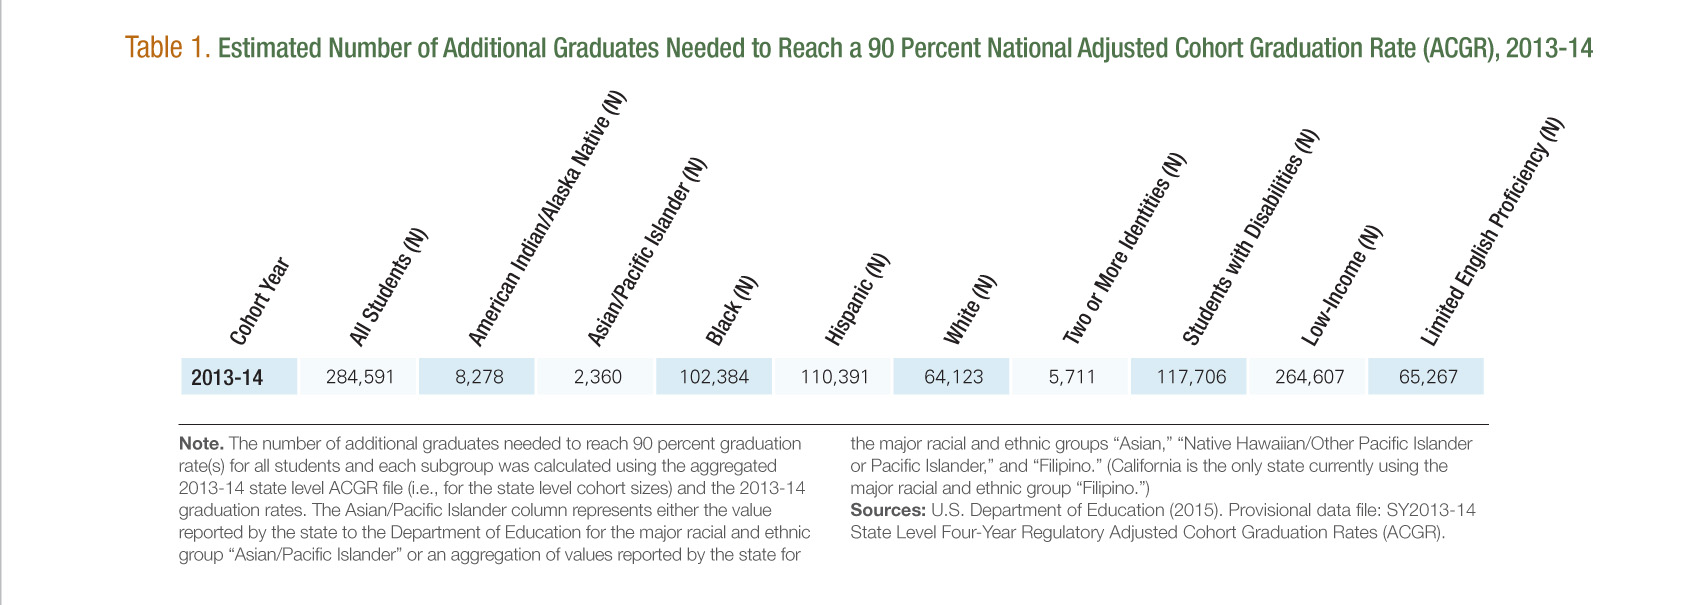 Estimated Additional Graduates Needed to Reach a National 90 Percent Grad Rate [Table 1]